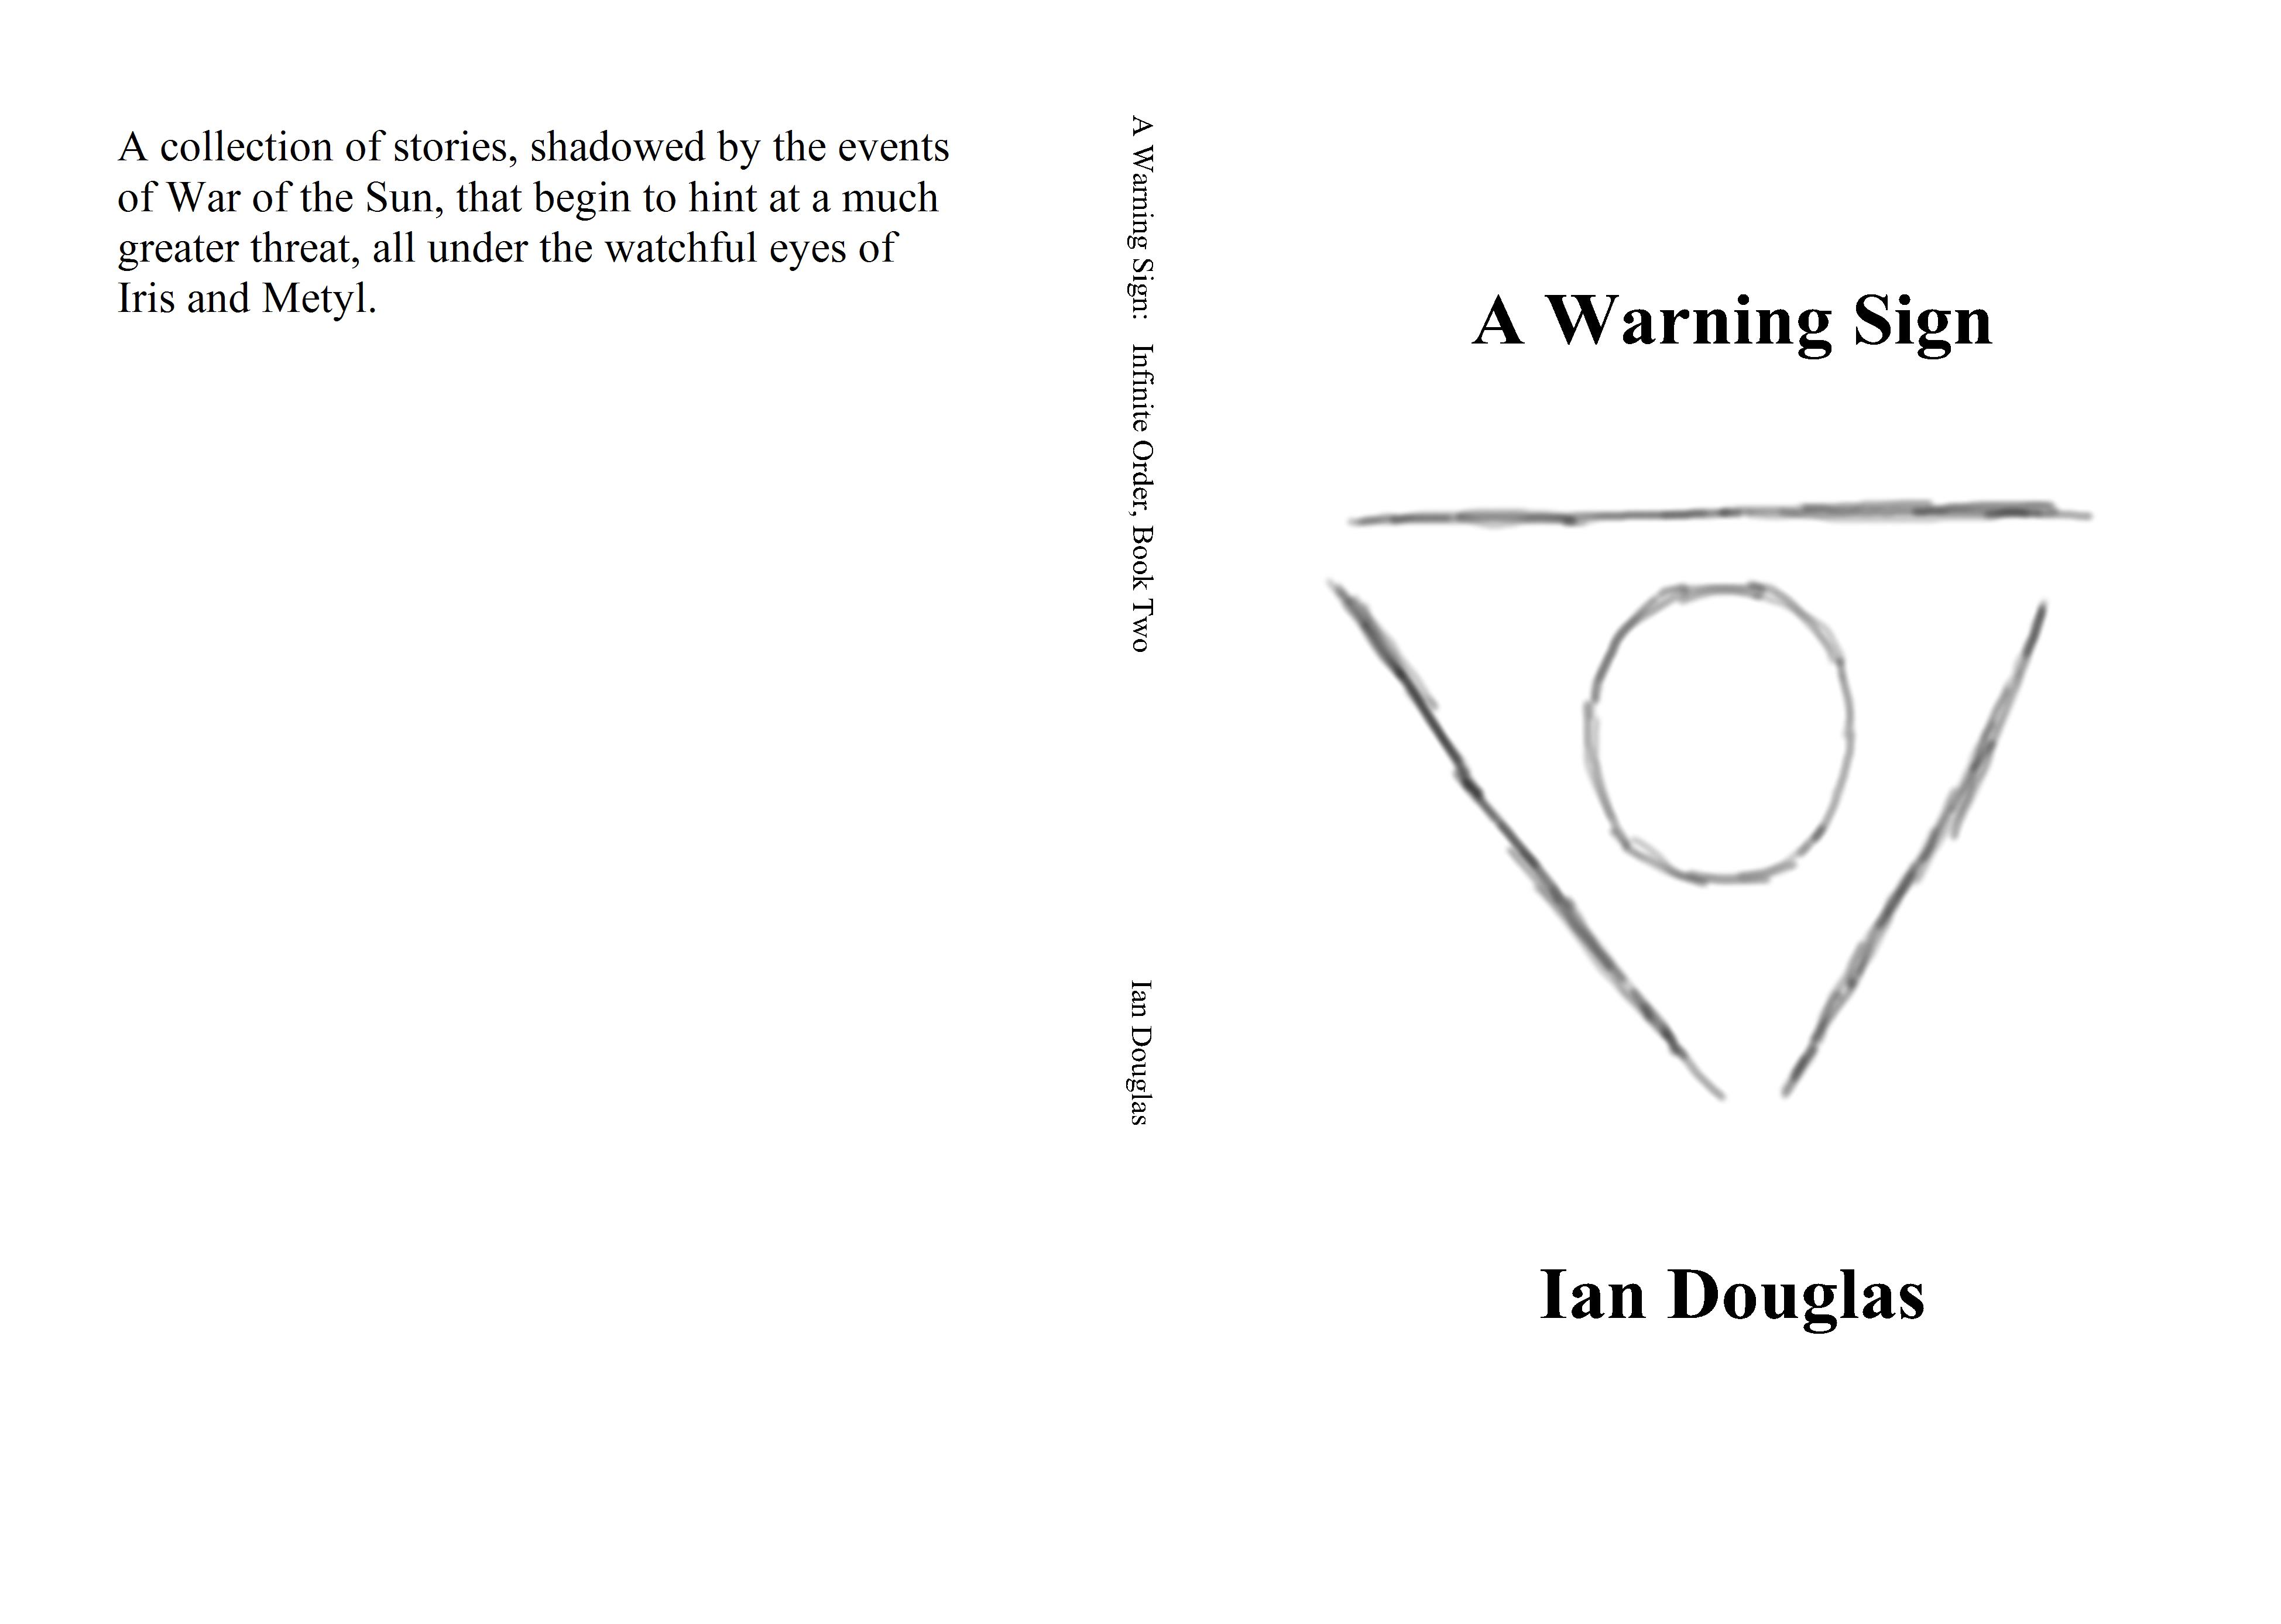 A Warning Sign cover image